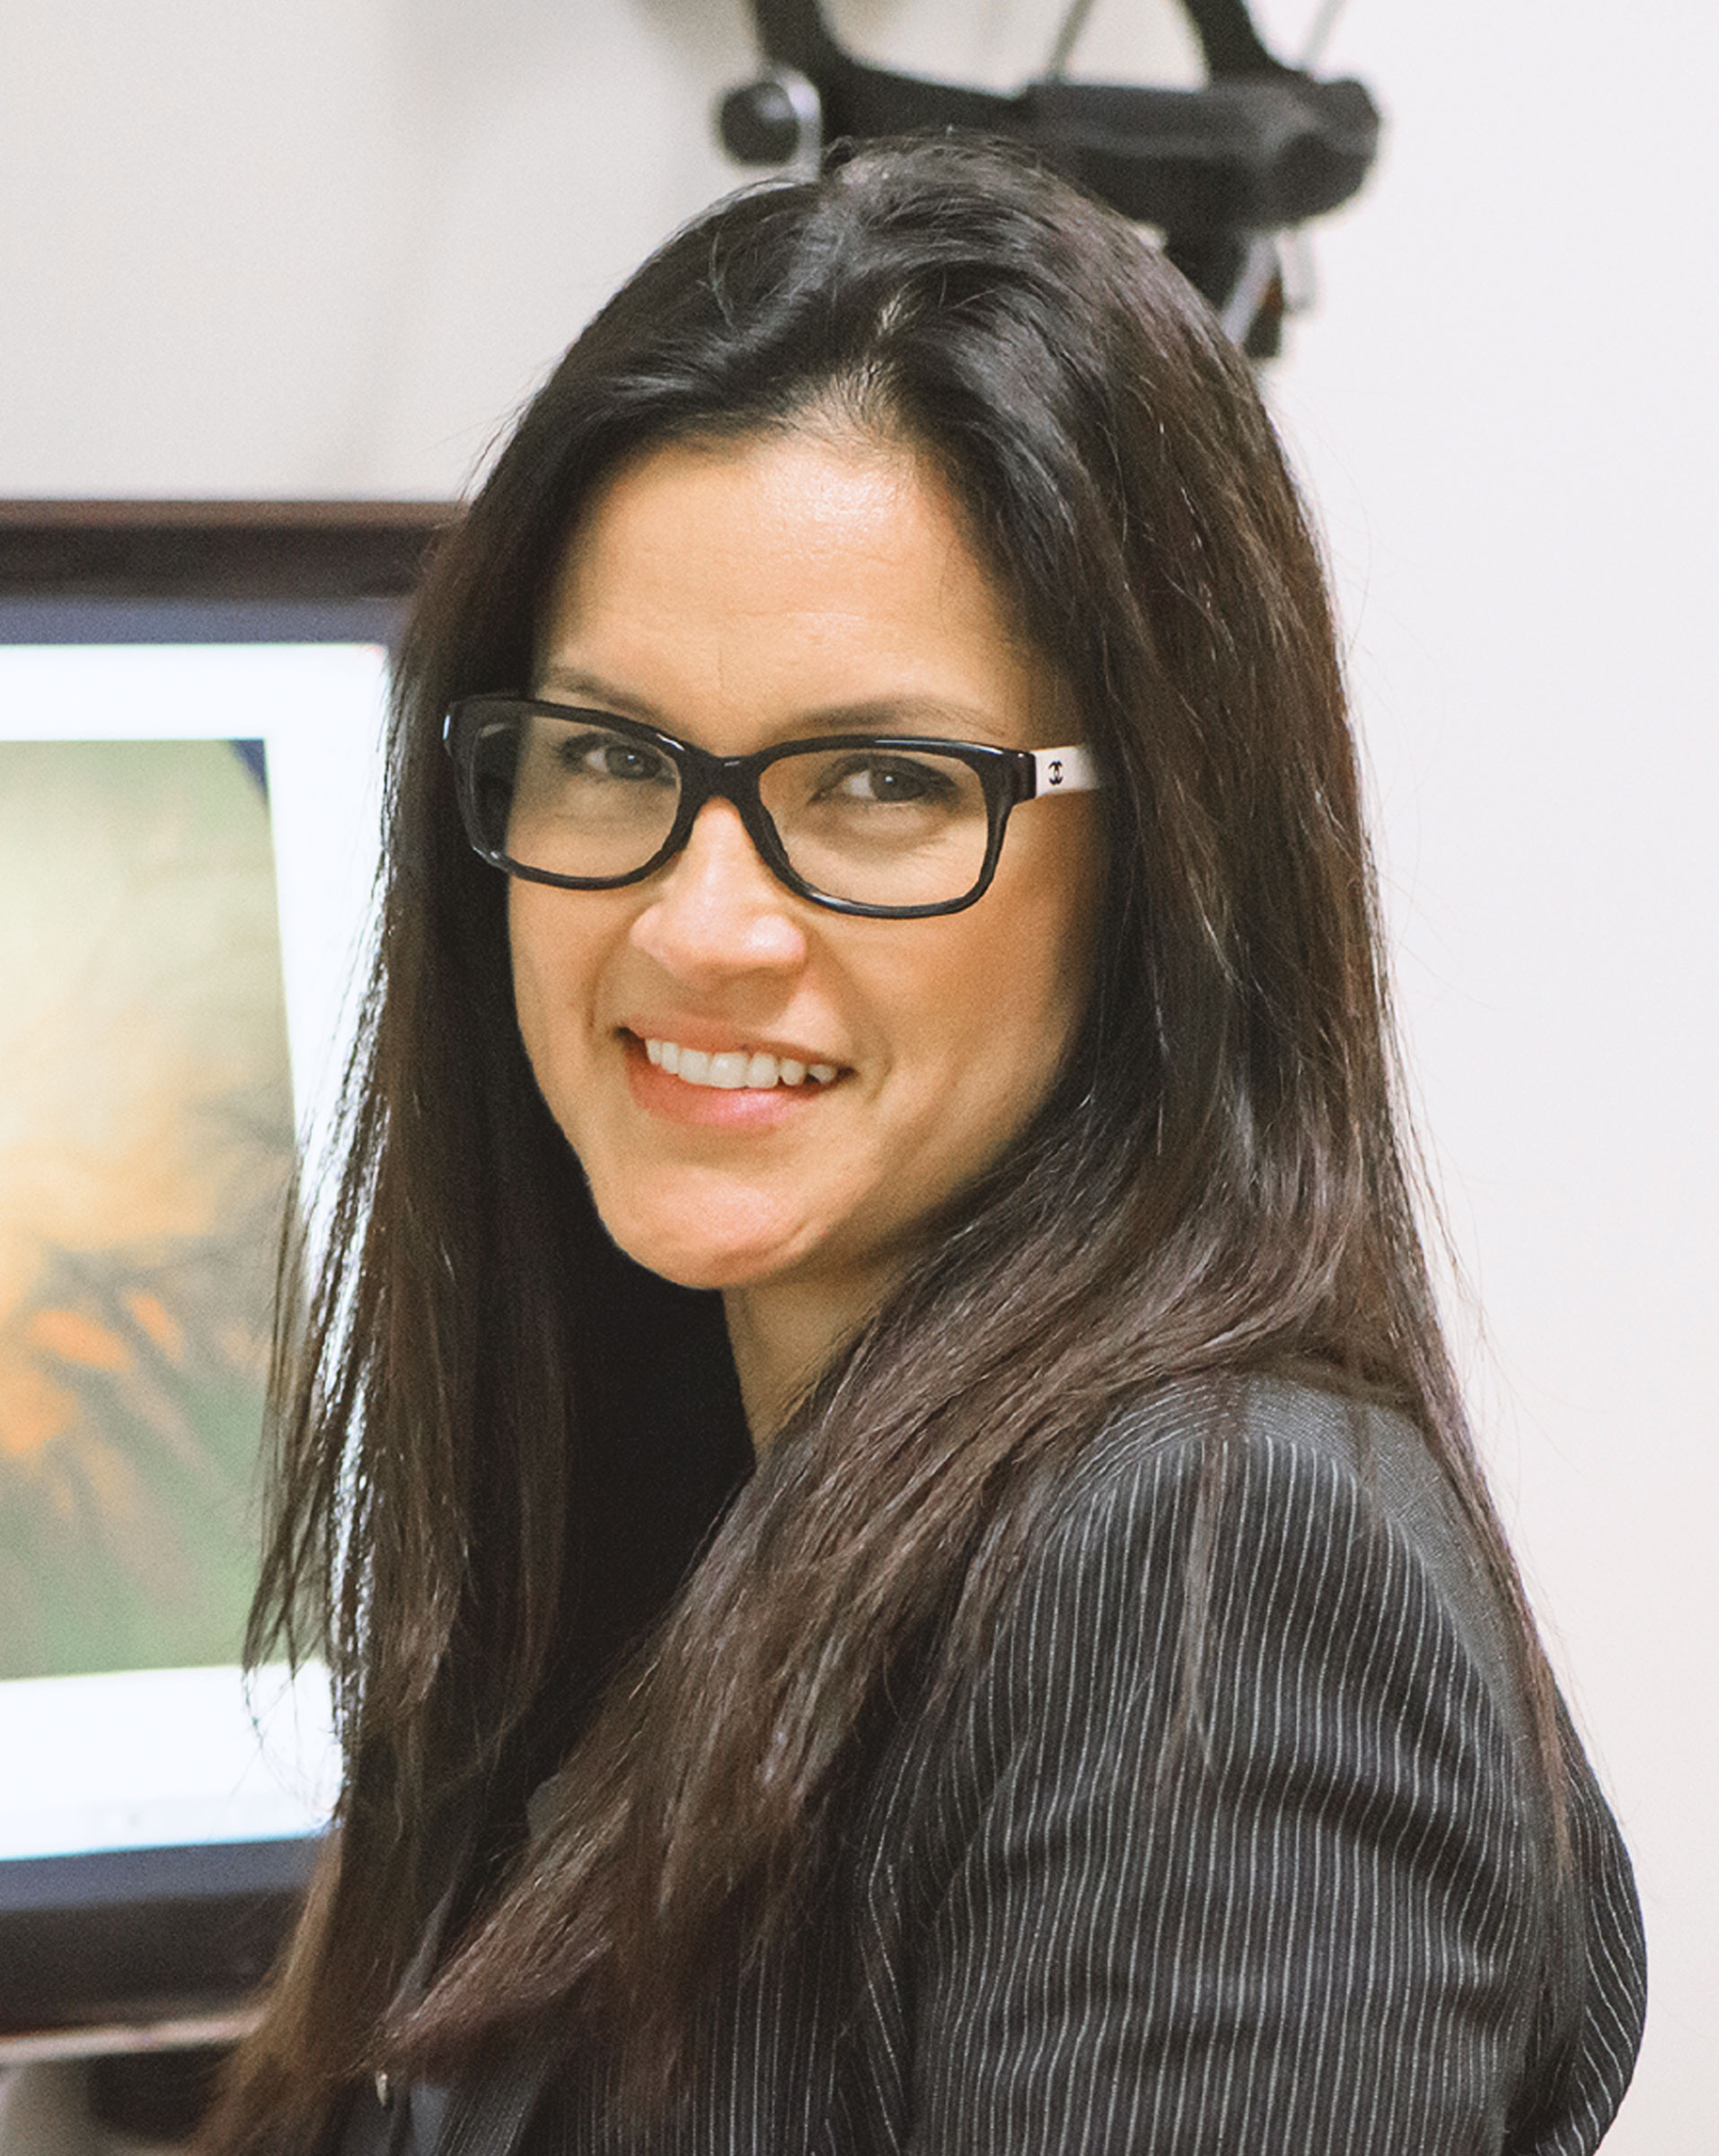 One of Our Optometrist On Our Team, Dr. Giselle Radice